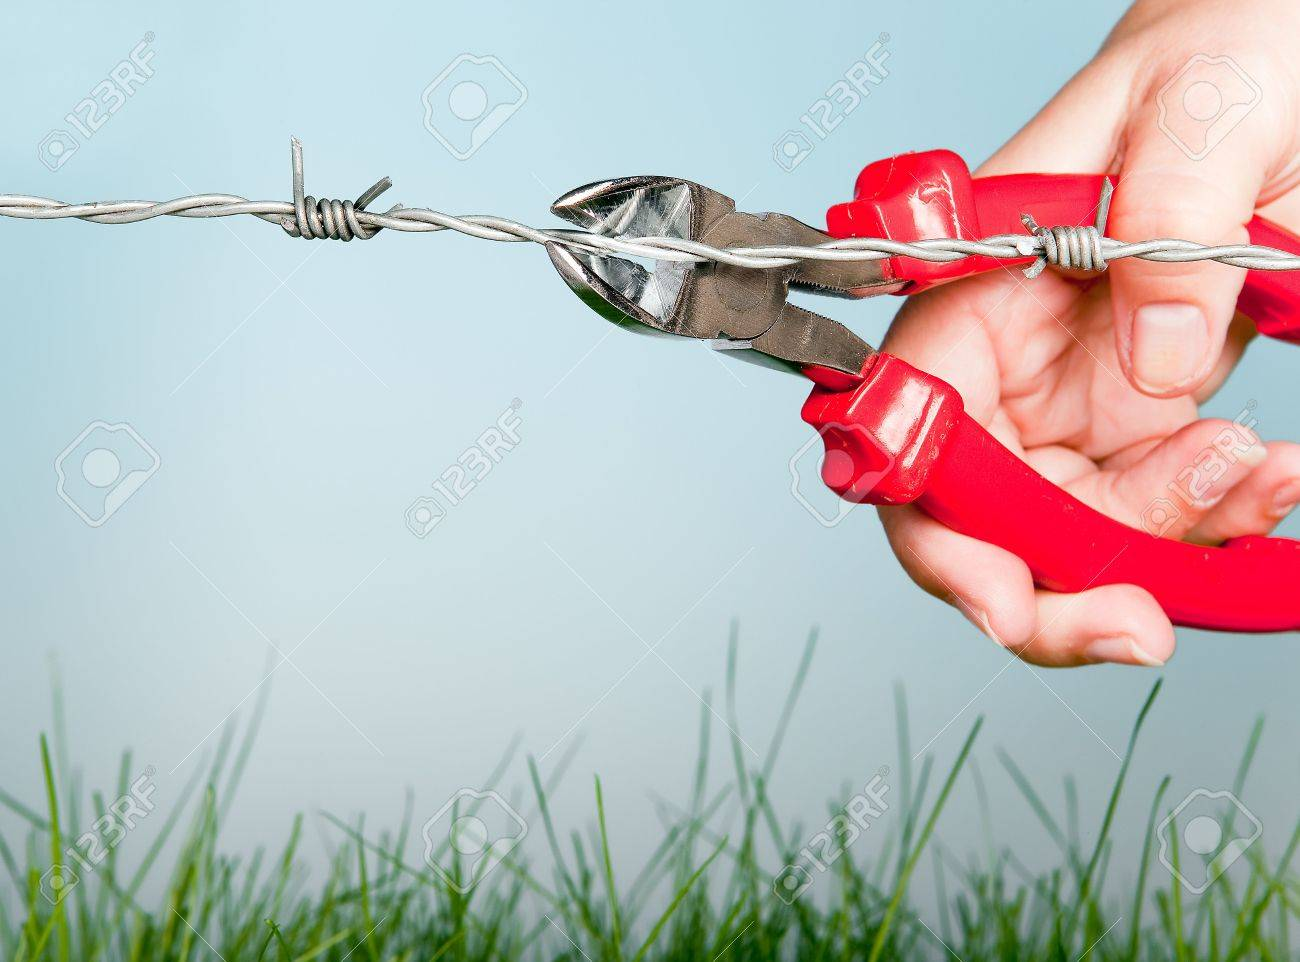 Hand cutting barbed wire with pincers to escape for freedom Stock Photo - 5770173